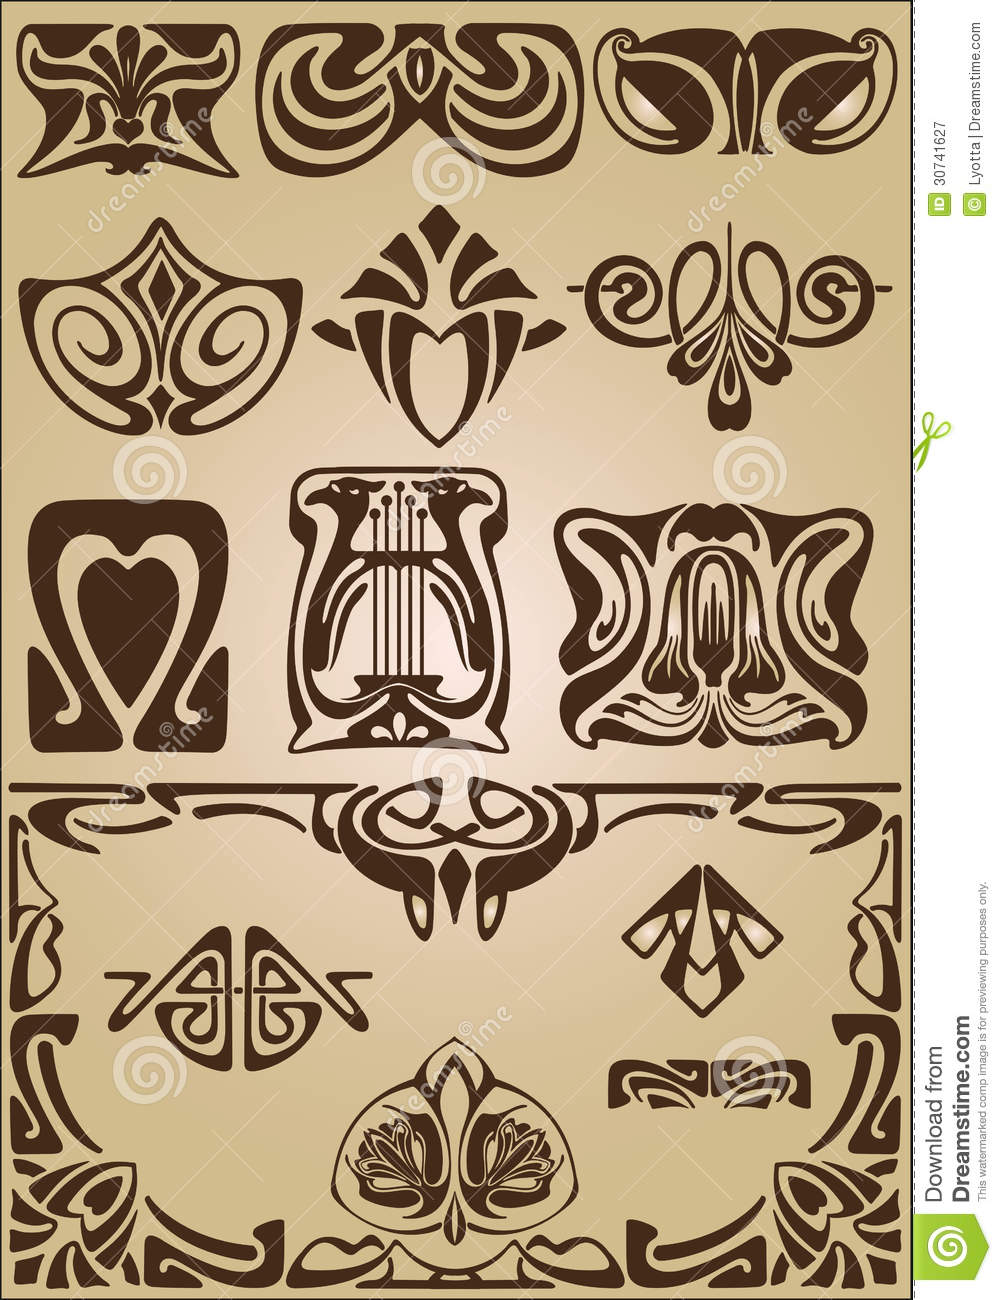 Art nouveau elements and corners design ornament royalty for Art de decoration